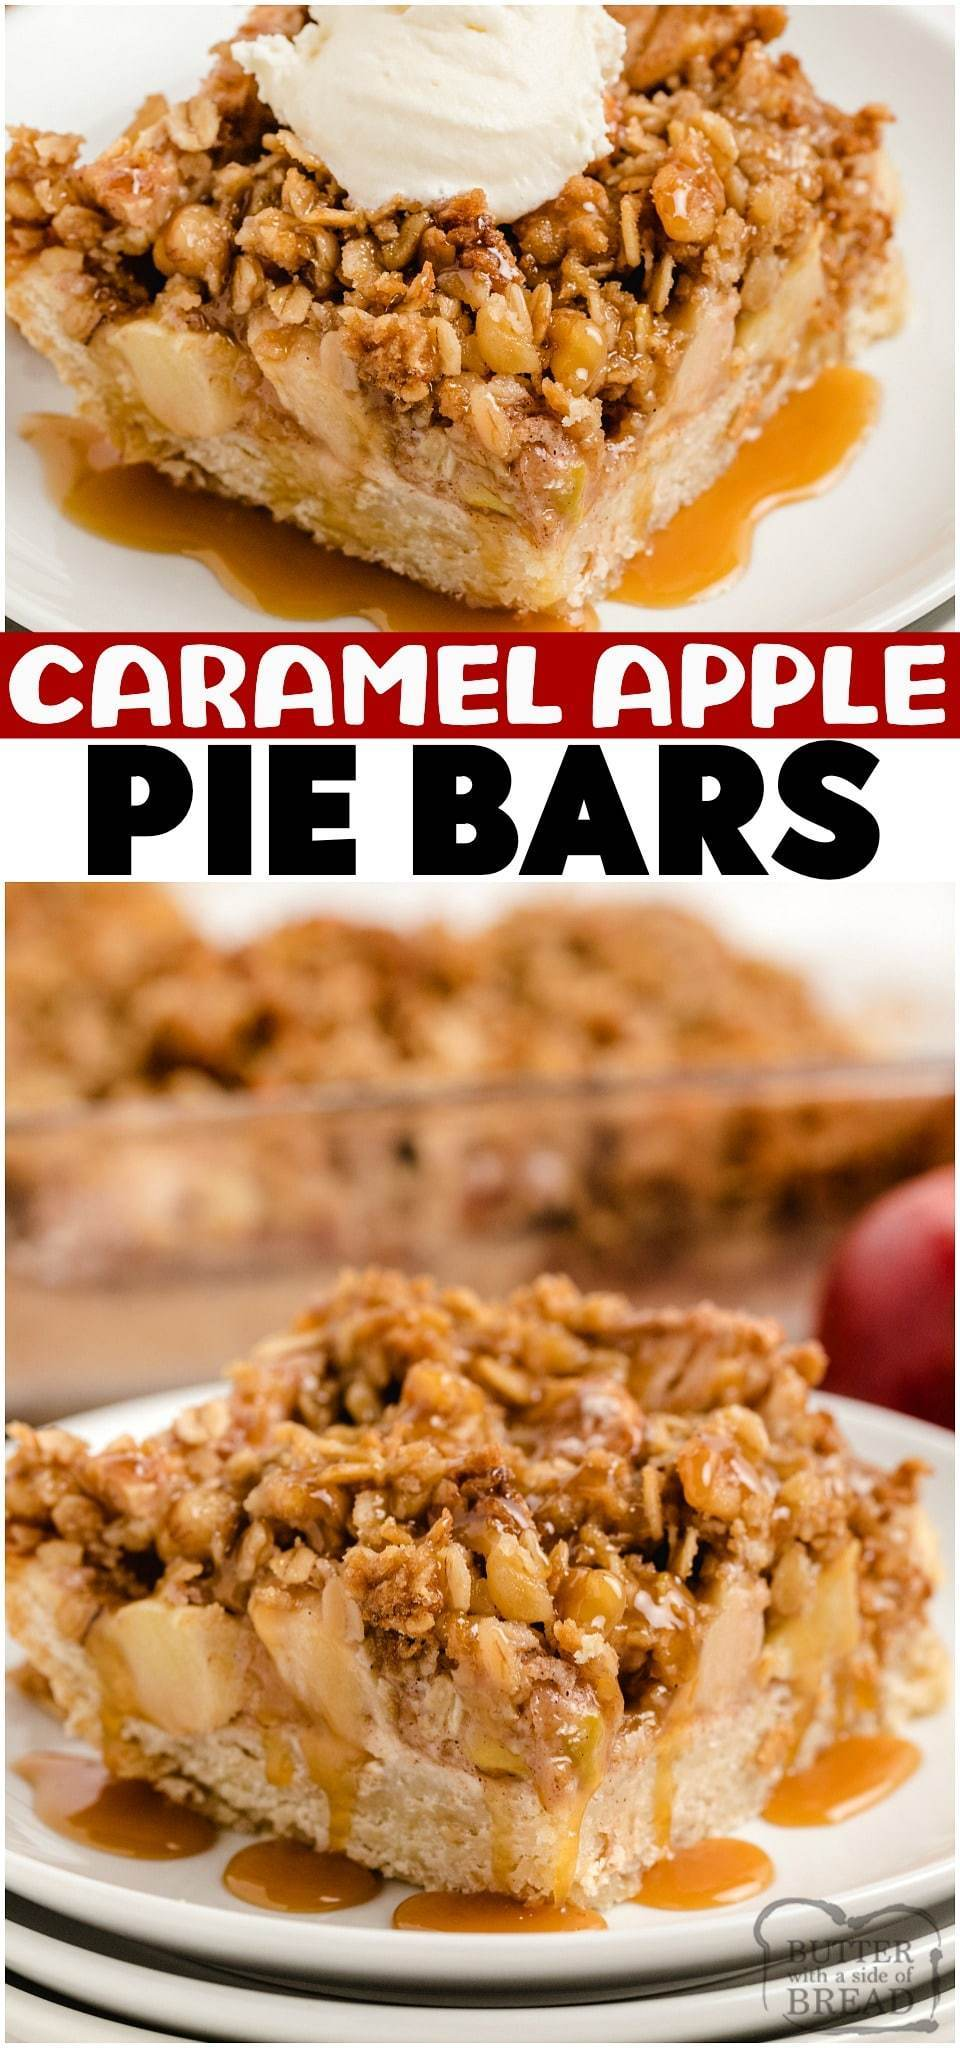 Apple Pie Bars topped with a buttery crumble & drizzled with caramel for a fantastic take on a classic apple pie! Perfect baked apples recipe for a no-fuss alternative to apple pie. Apple pie bars are easier to make, simple to serve and everyone loves them!